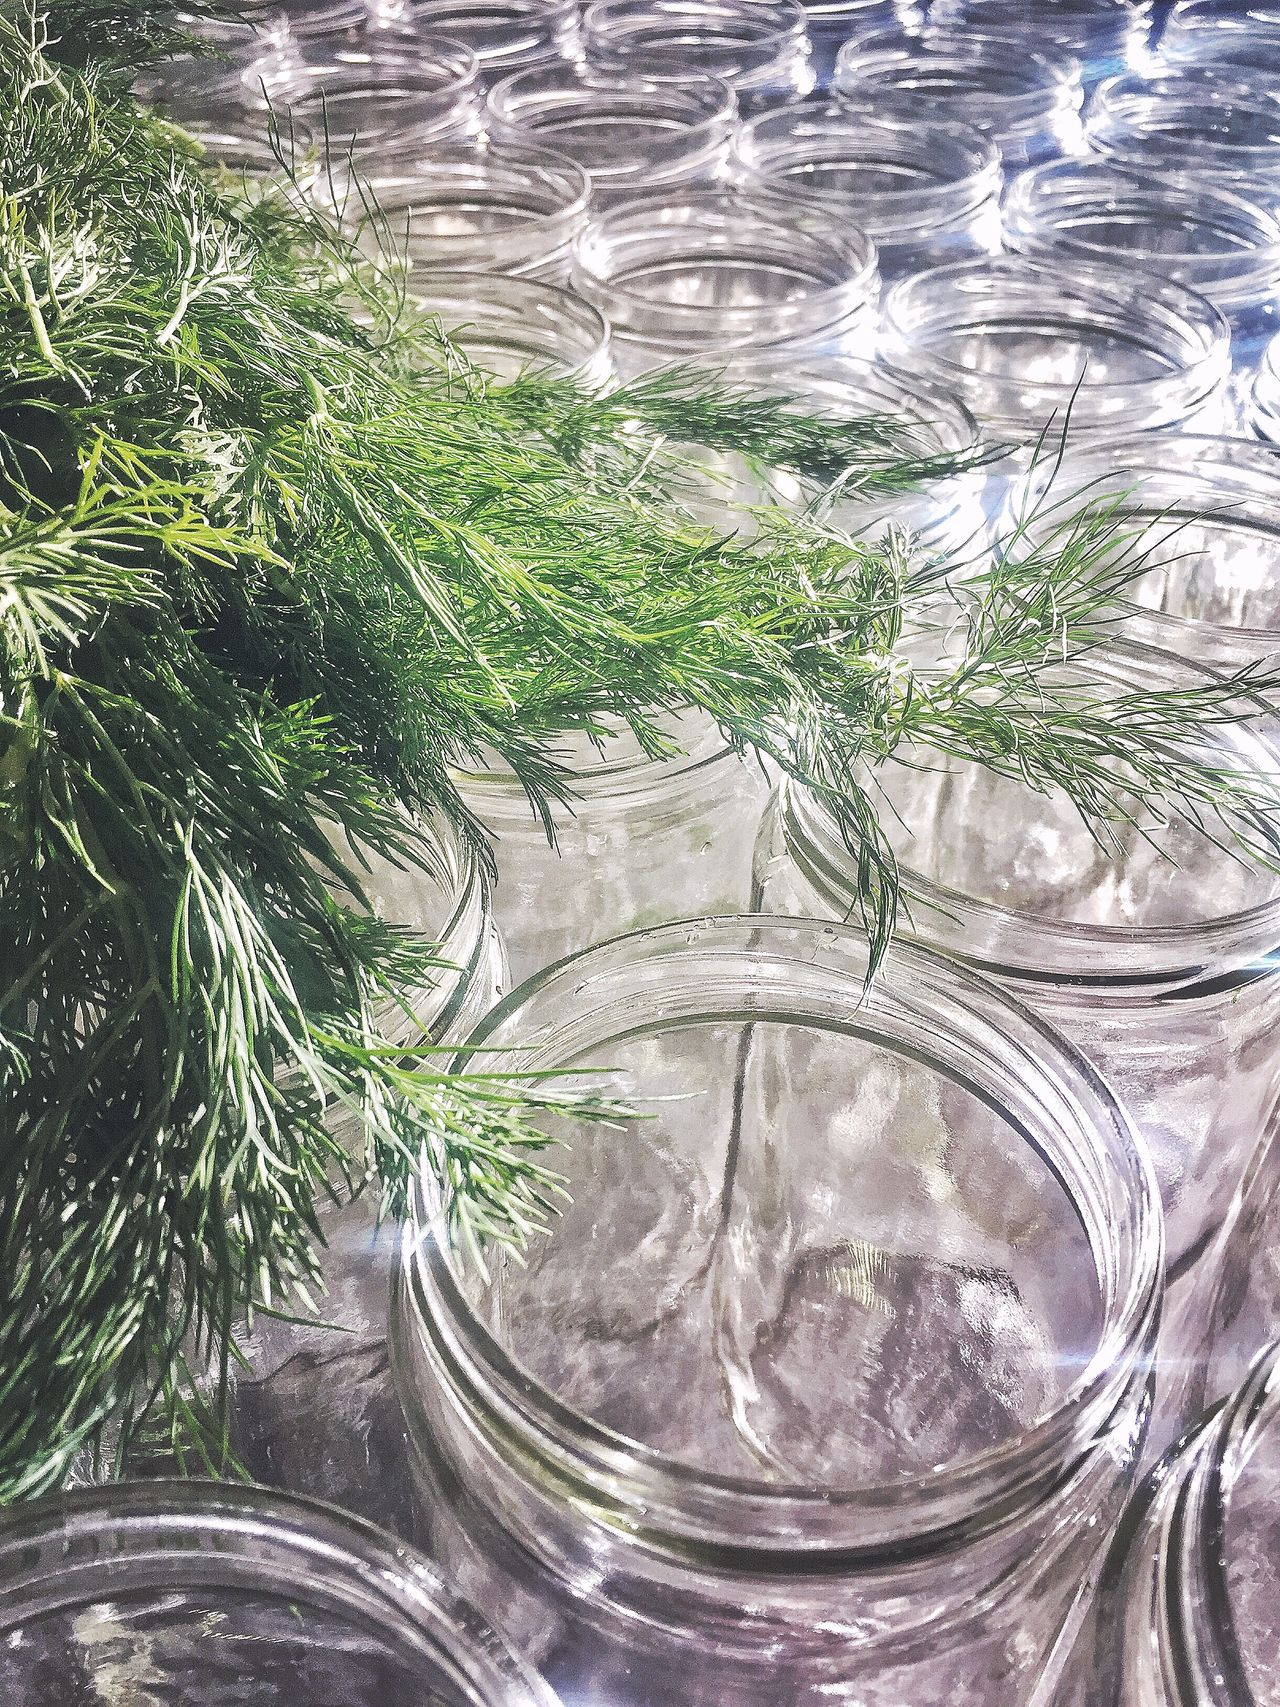 Dill + Jars Reflection Jars  Glass Green Foodphotography Eye4photography  Photography Brooklyn Cooking Pickeling